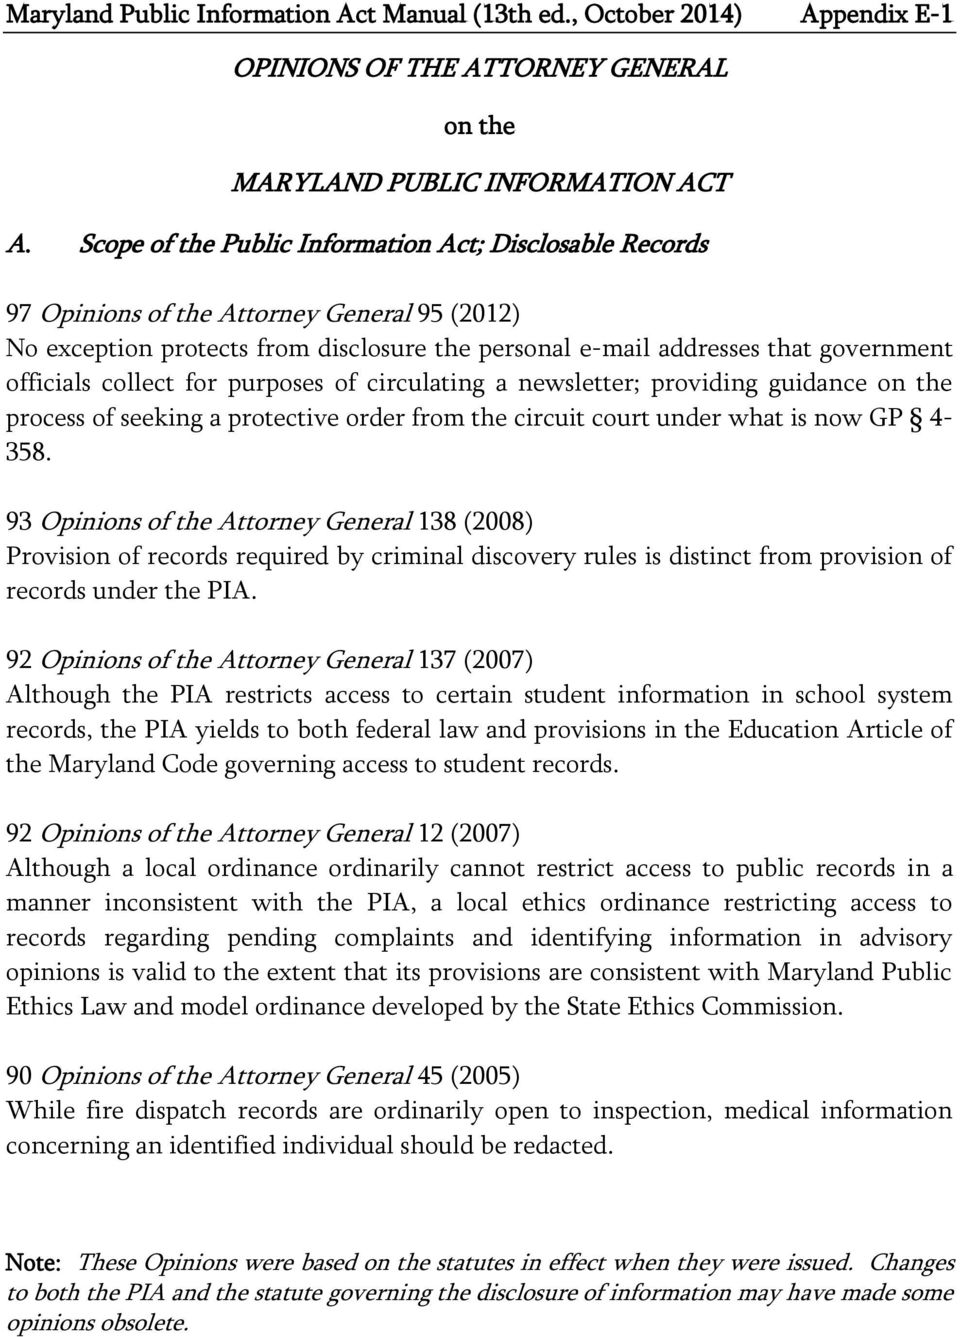 public information on maryland criminal records